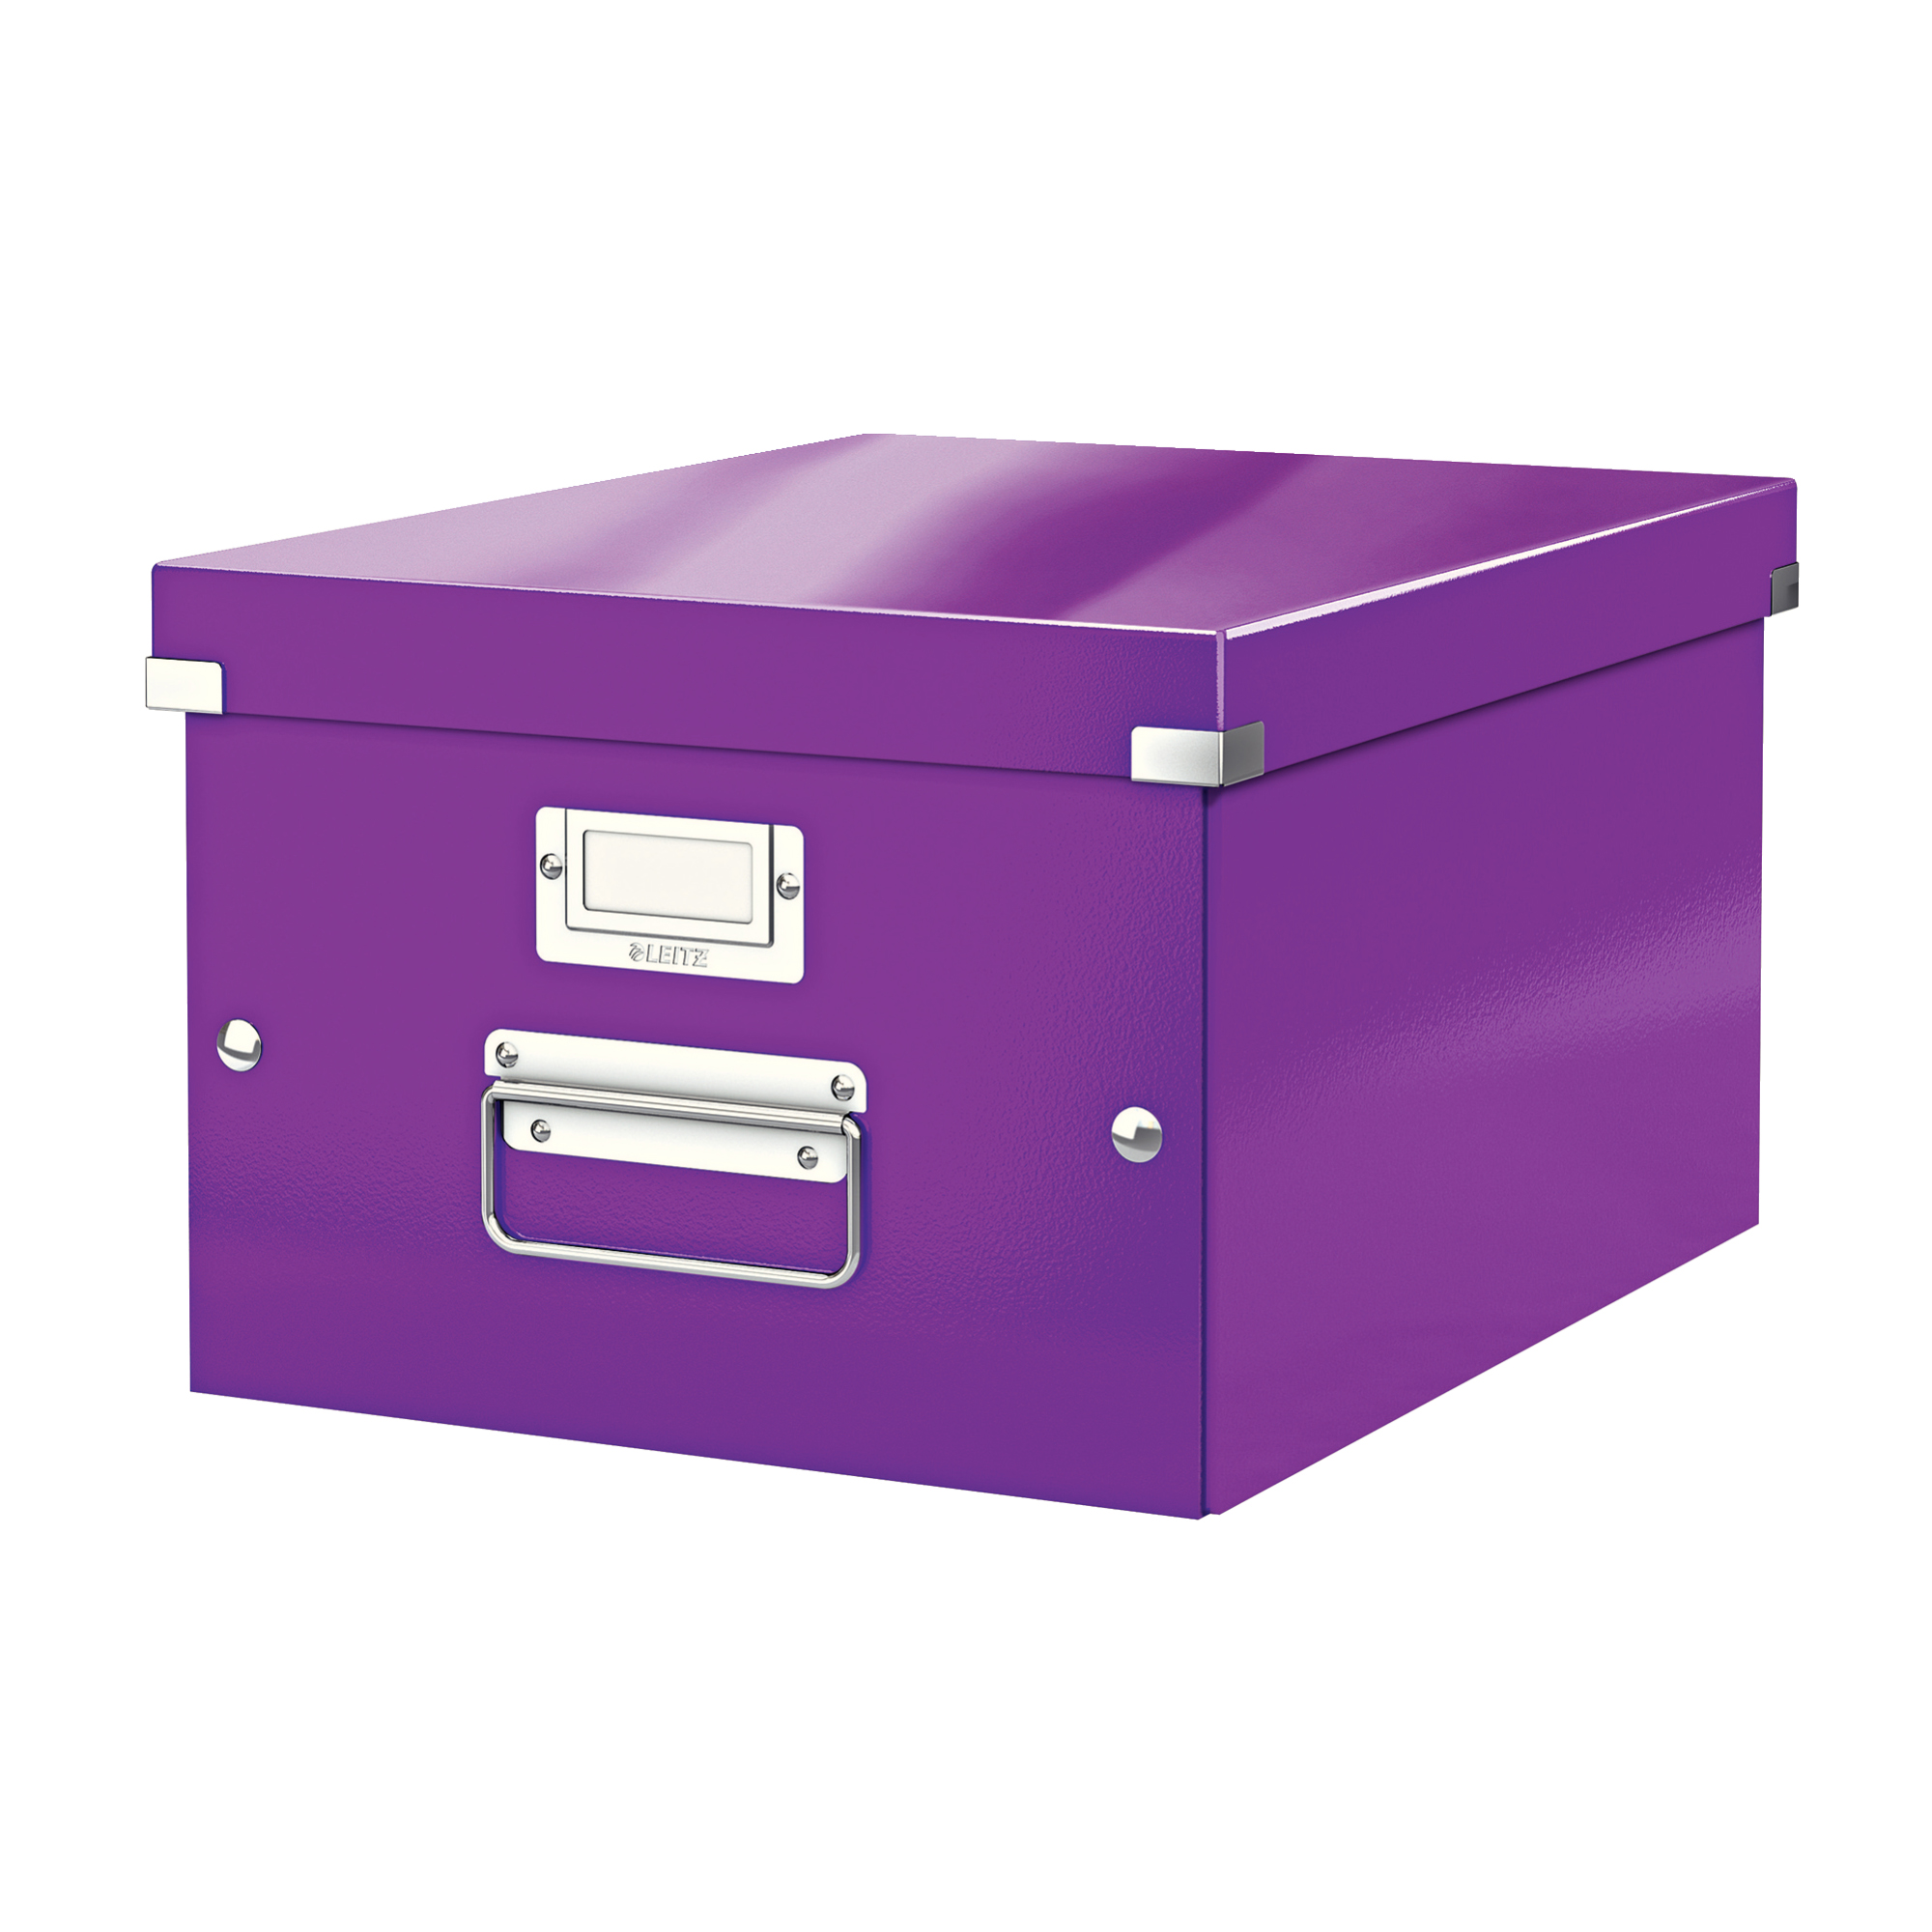 Tool Boxes Leitz Click & Store Collapsible Storage Box Medium For A4 Purple Ref 60440062